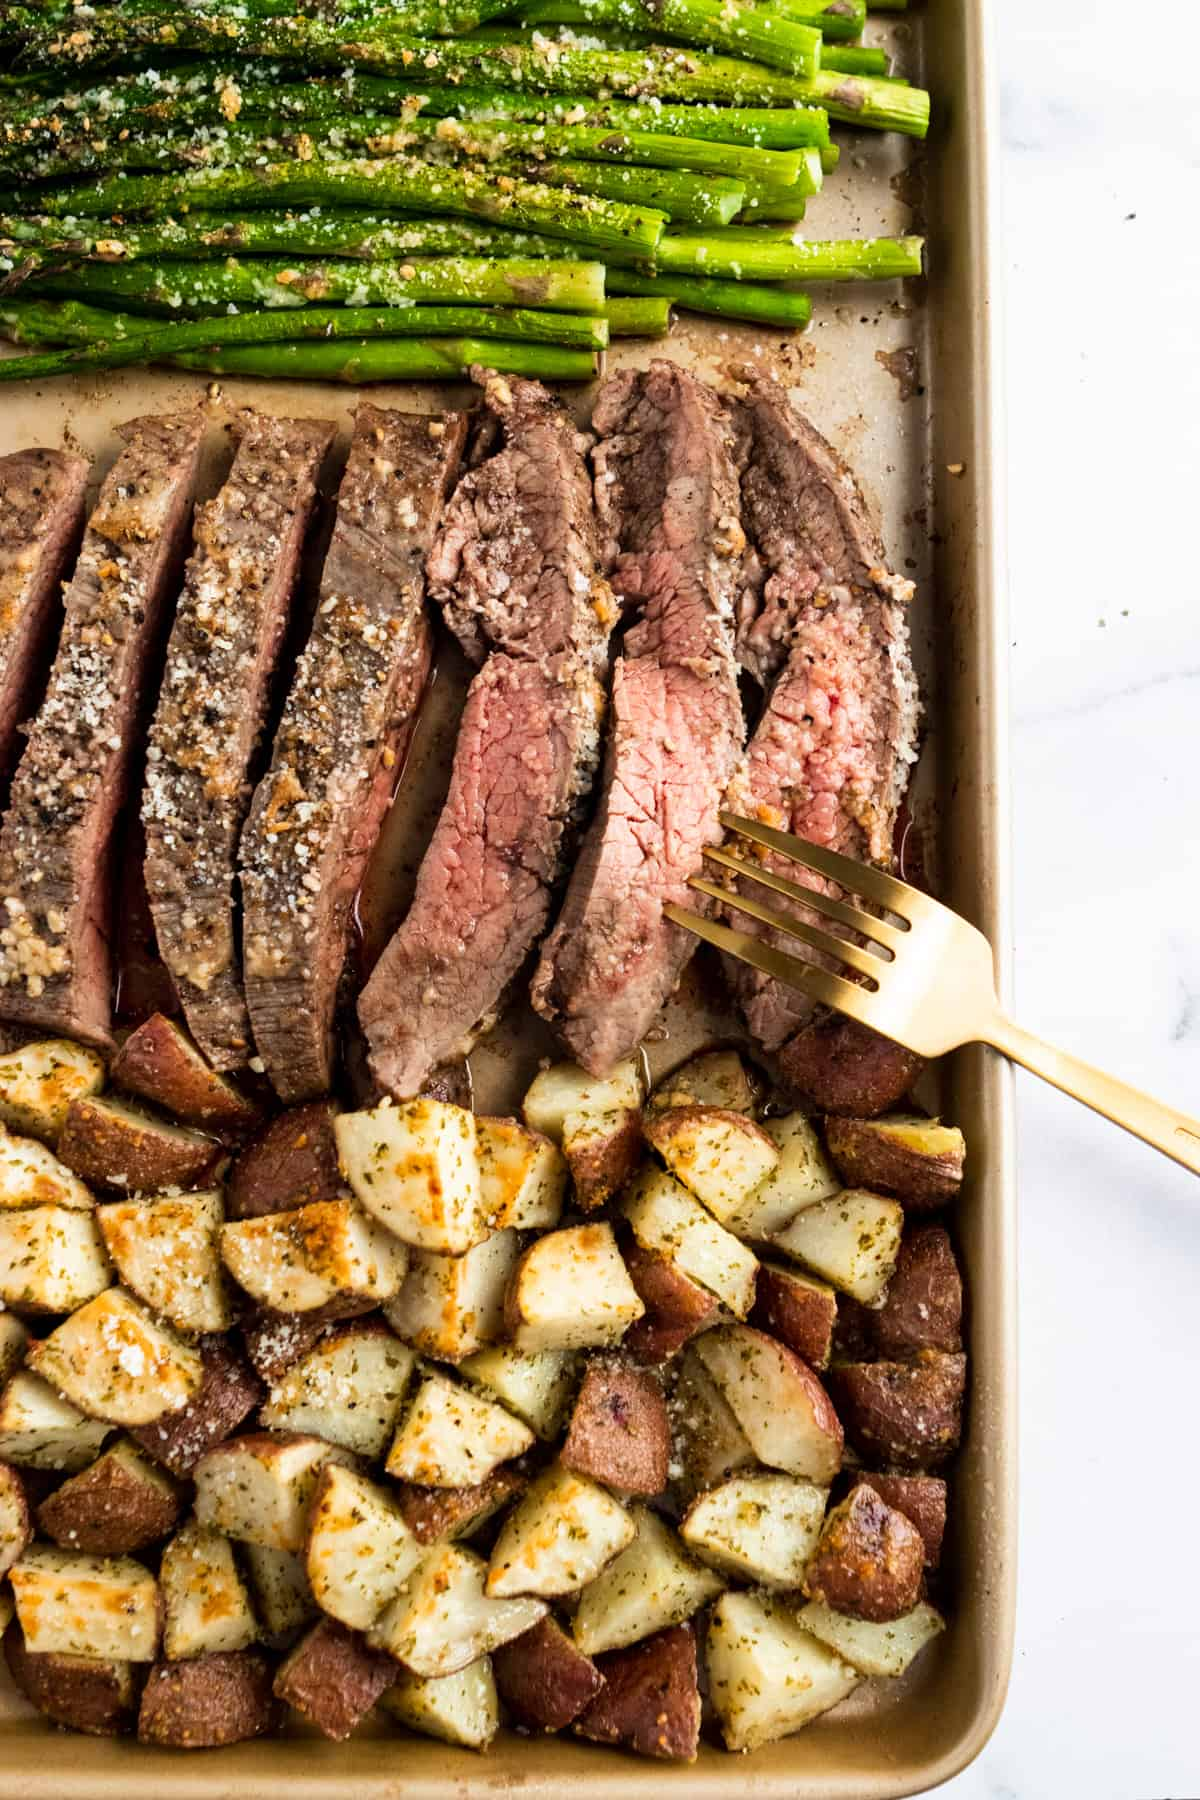 Parmesan crusted steak with potatoes and asparagus on sheet pan.